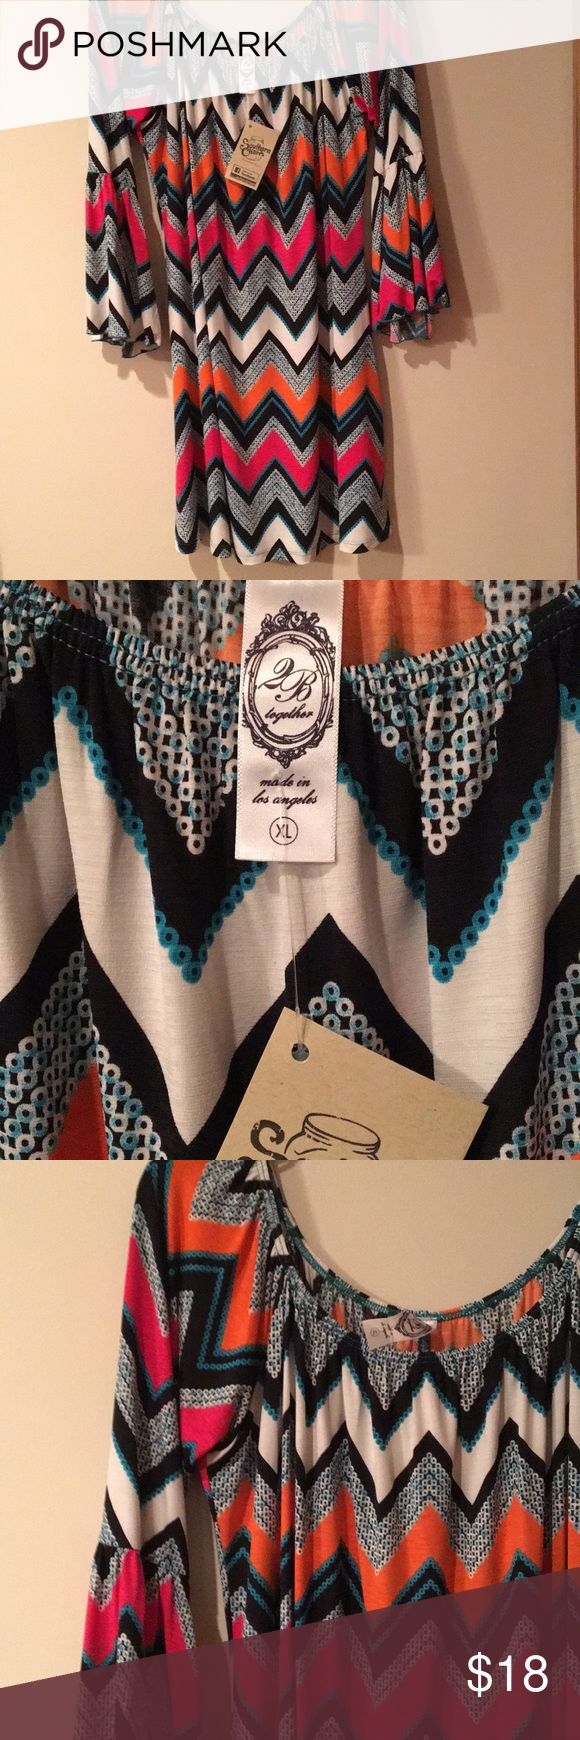 Chevron Print Dress Chevron print dress with pink, orange, and white chevrons accented in teal blue.  Perfect with leggings or with as a cute summer dress.  Bell sleeves with riffle below the elbow. 2B Together Dresses Mini